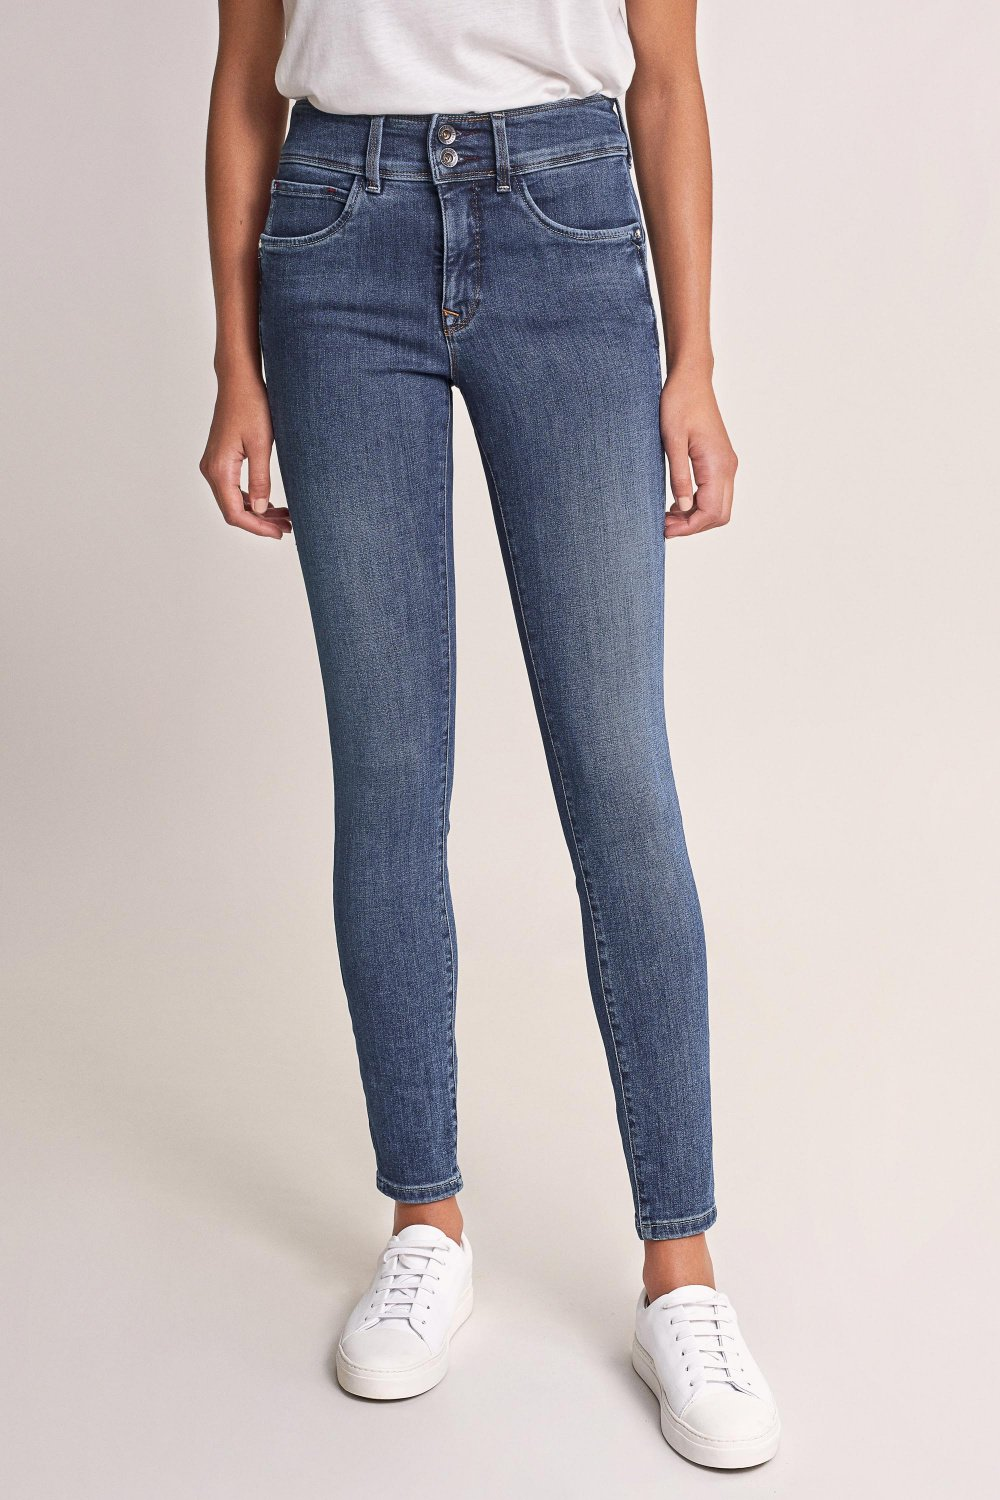 Push In Secret skinny jeans with details - Salsa